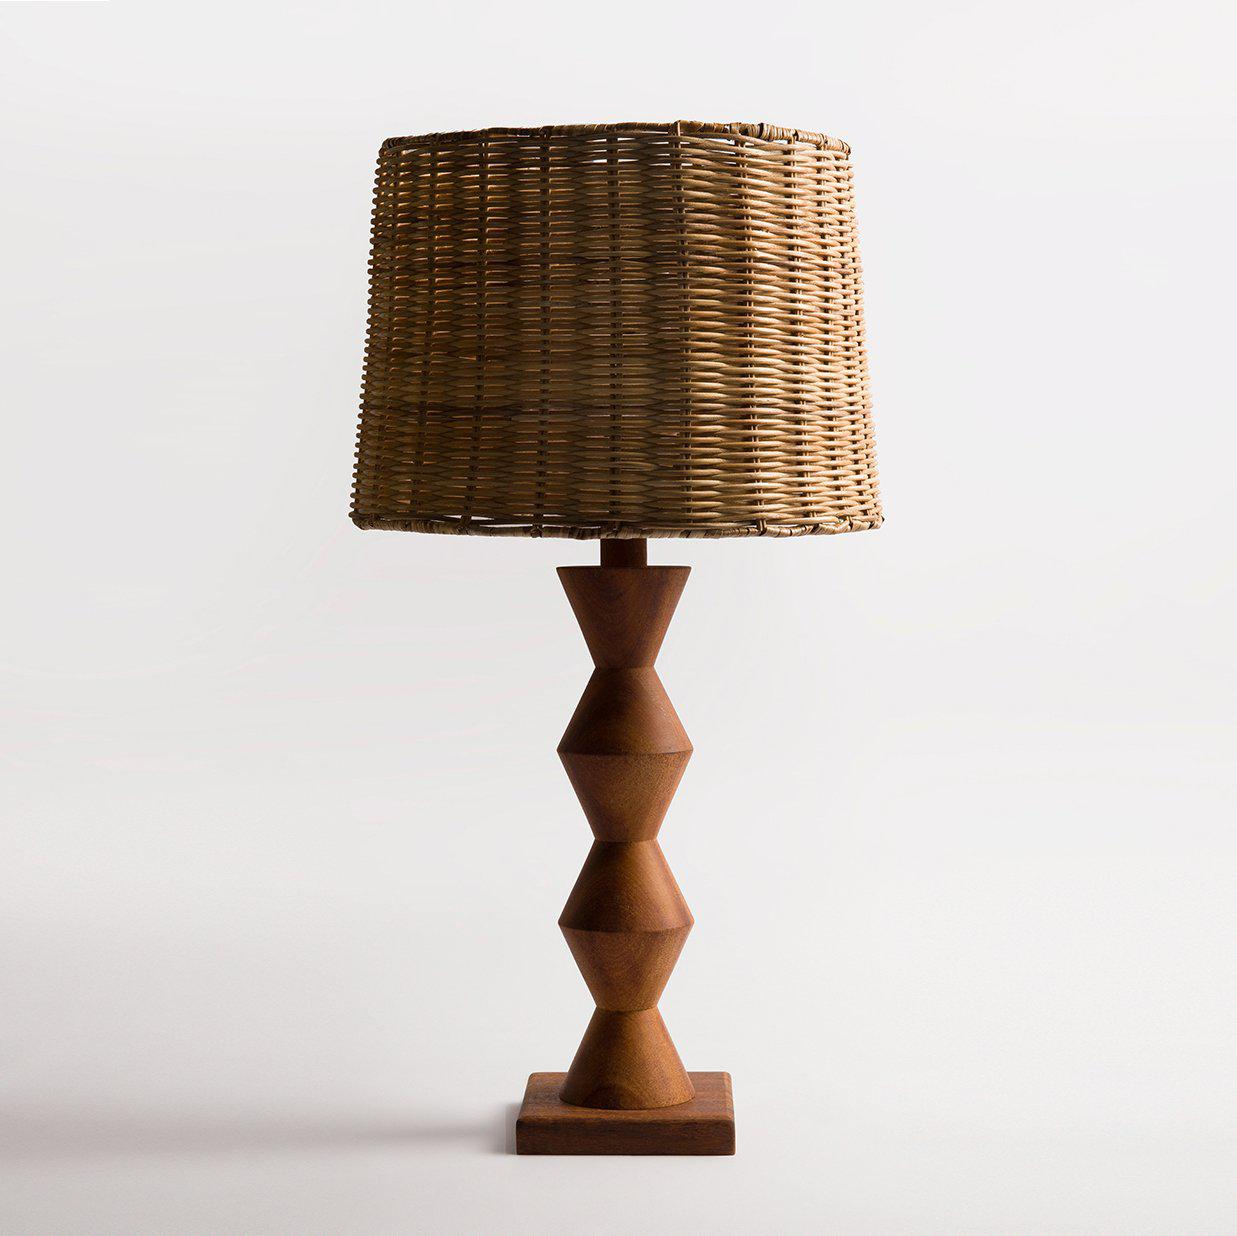 Mizo Table Lamp